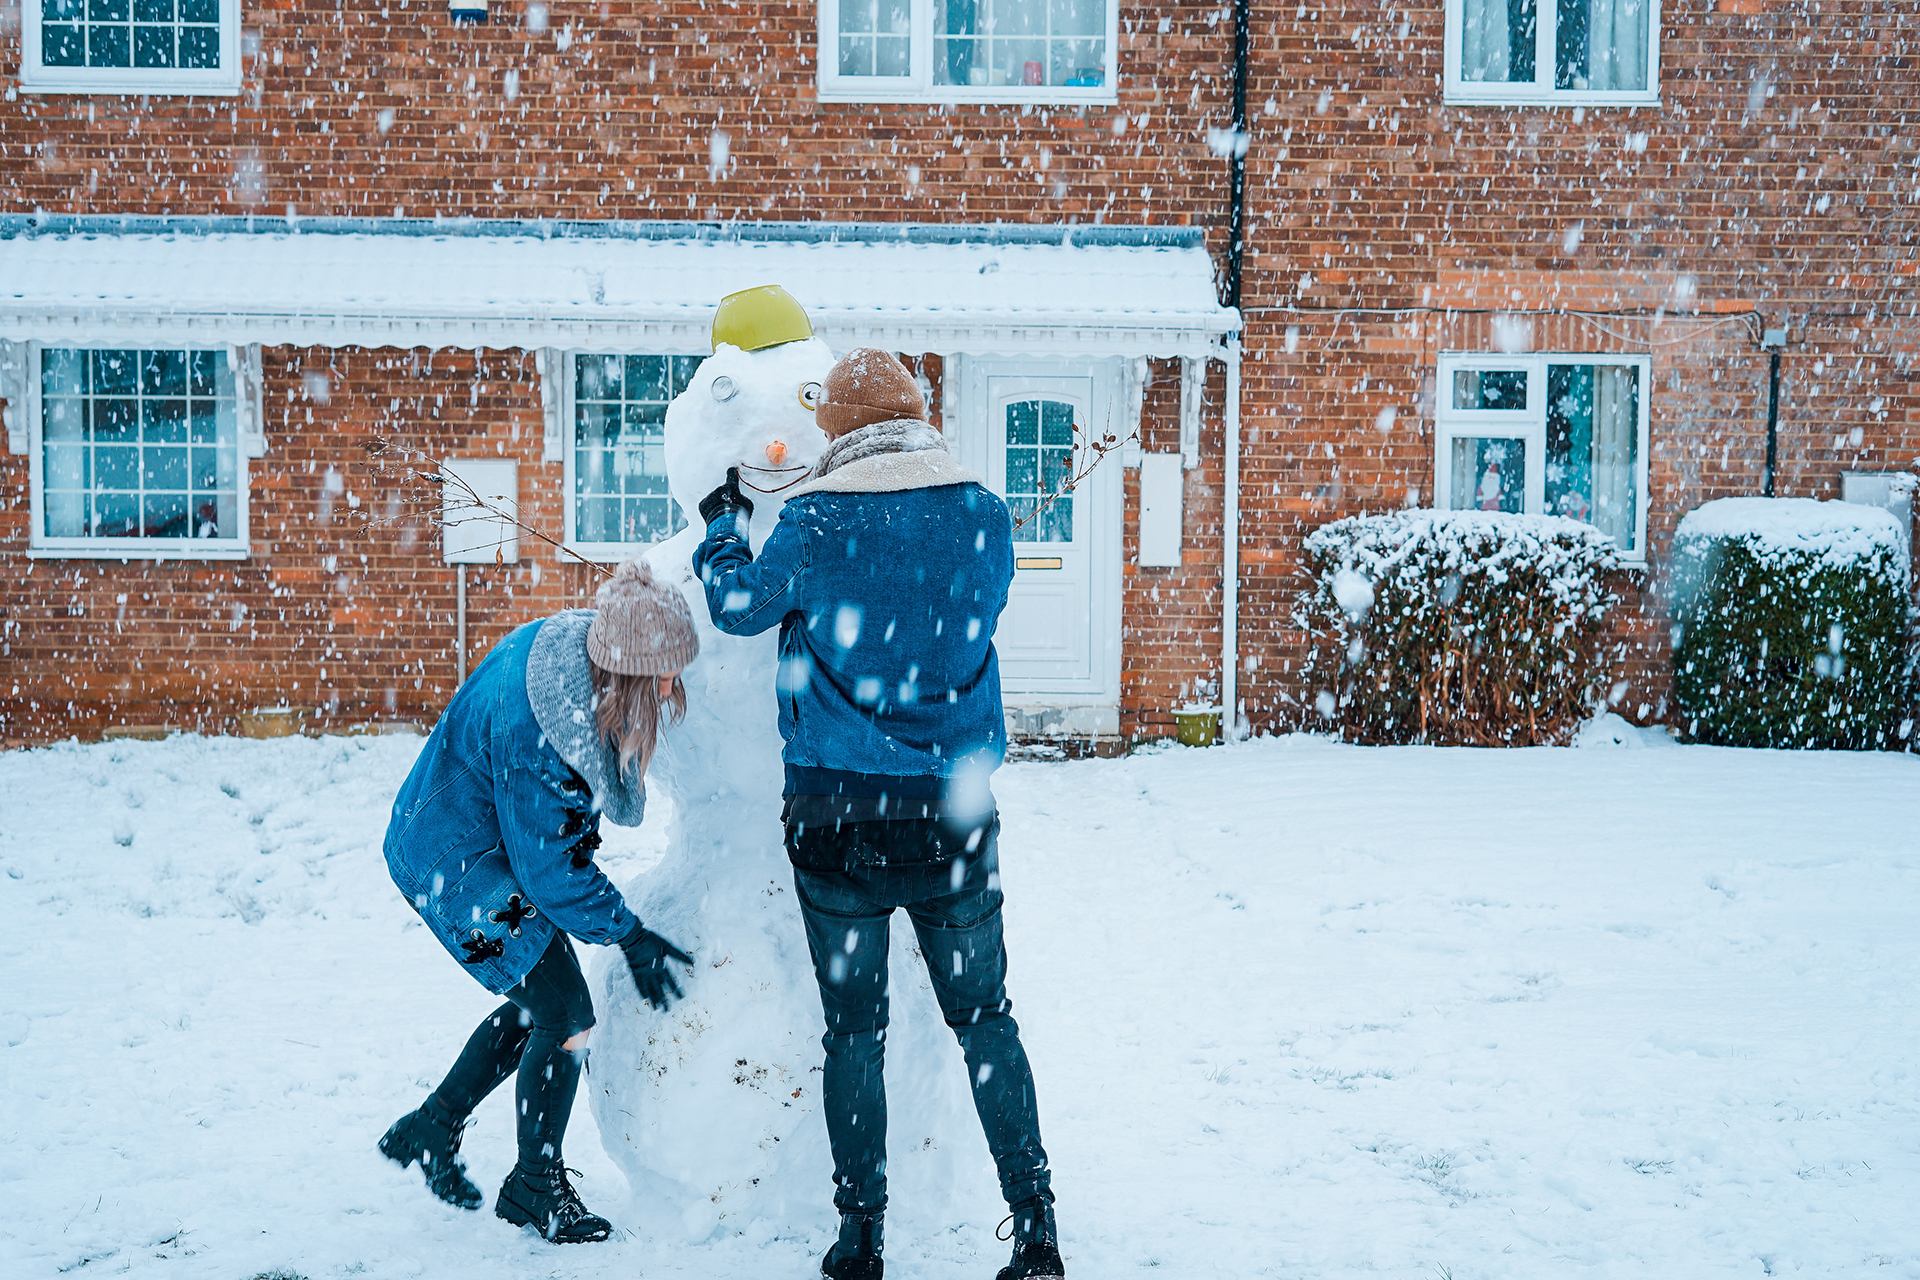 a photo of two people building a snowman in front of a brick structure